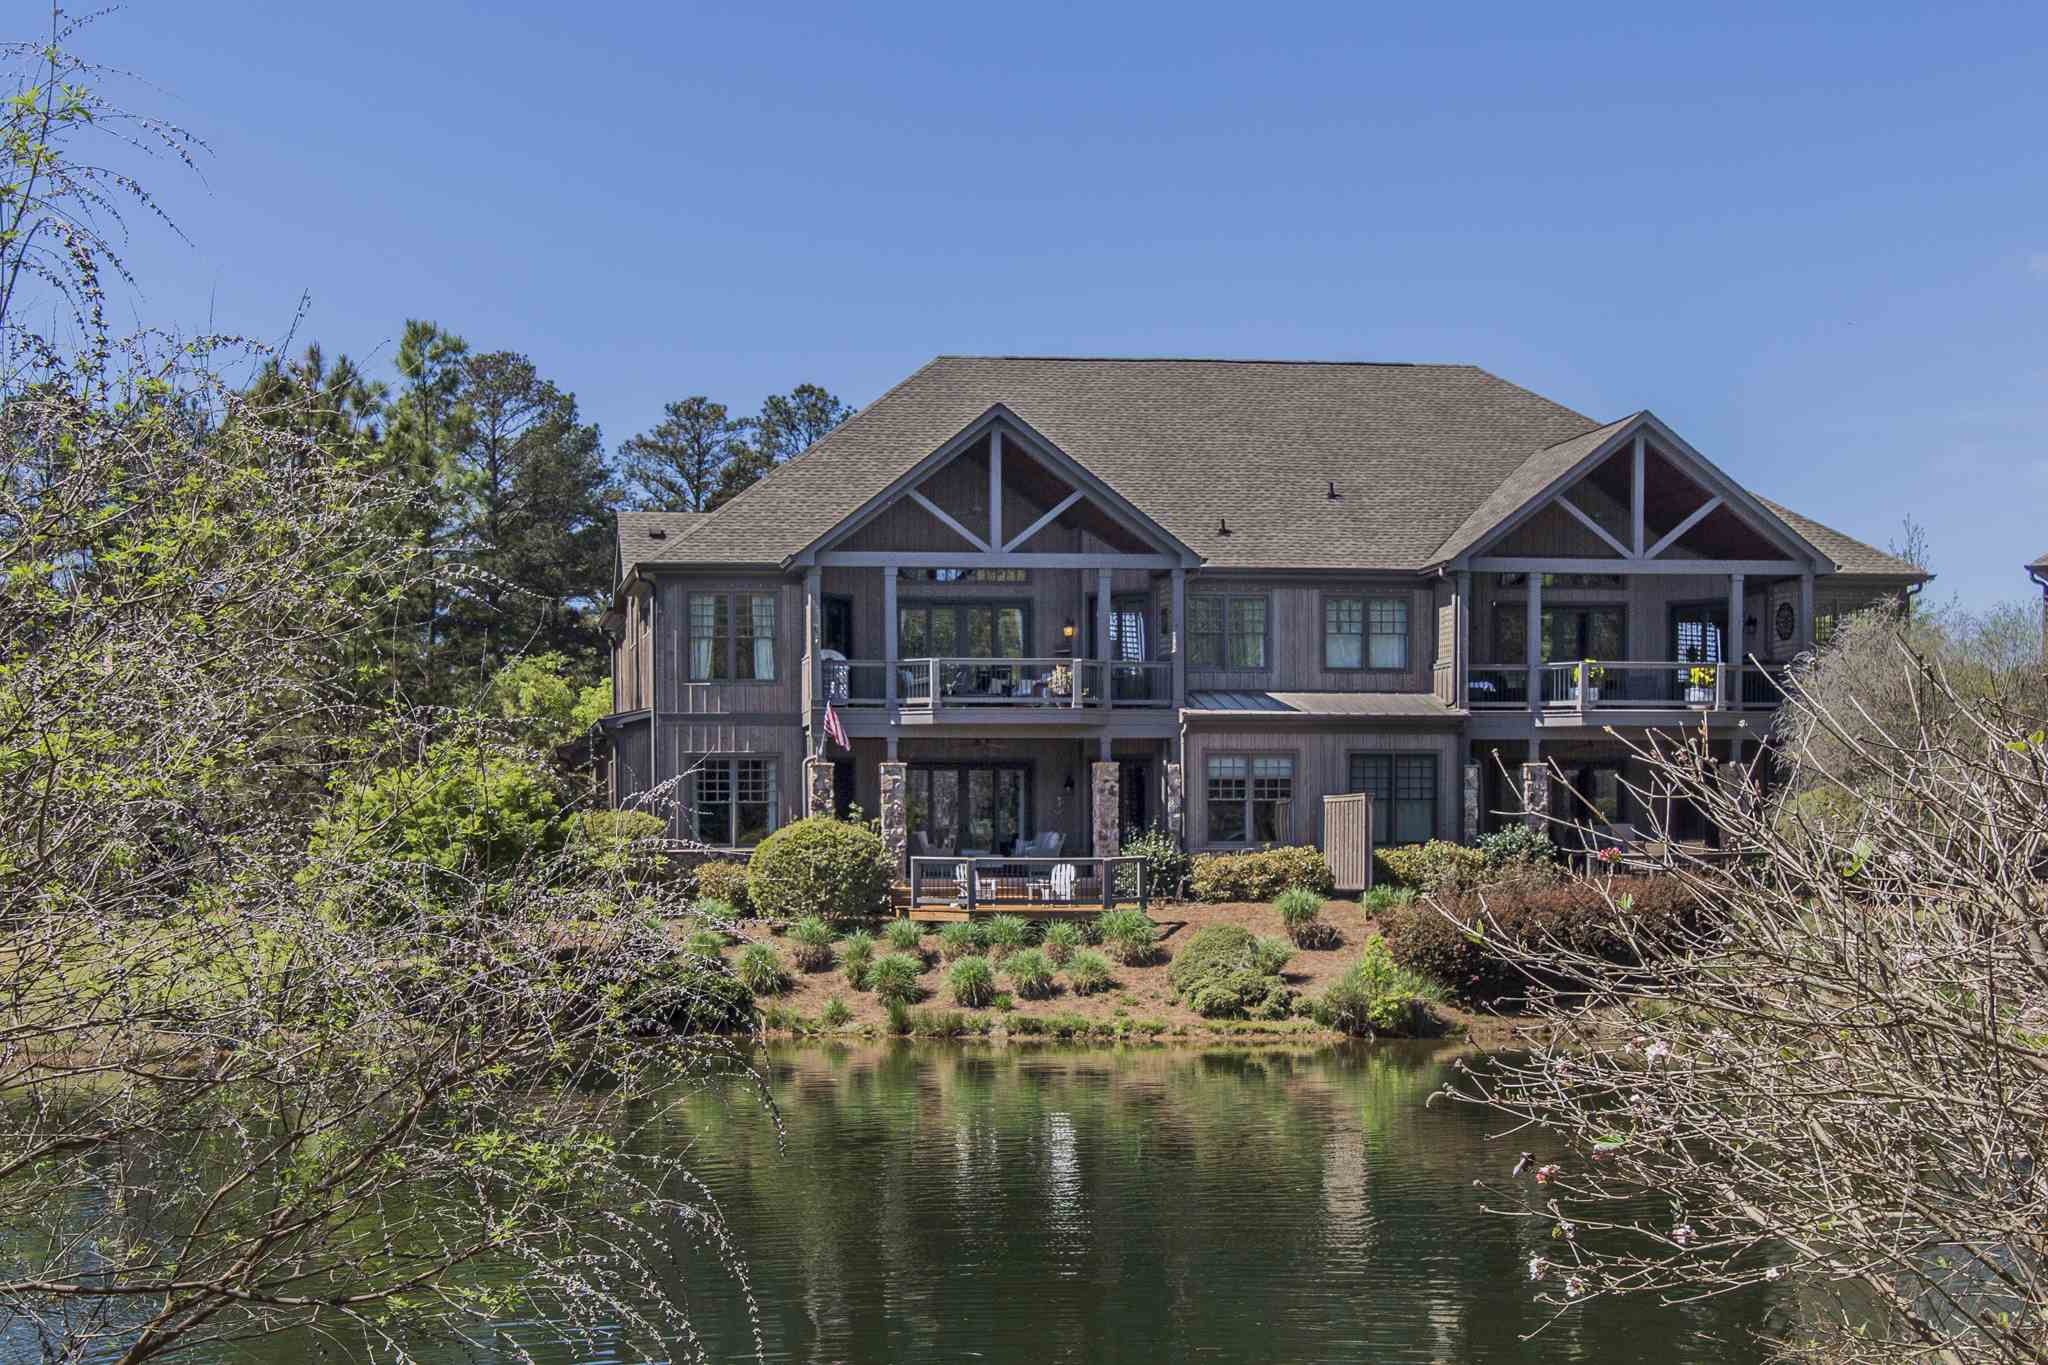 127 D ARBORS LANE, Lake Oconee, Georgia